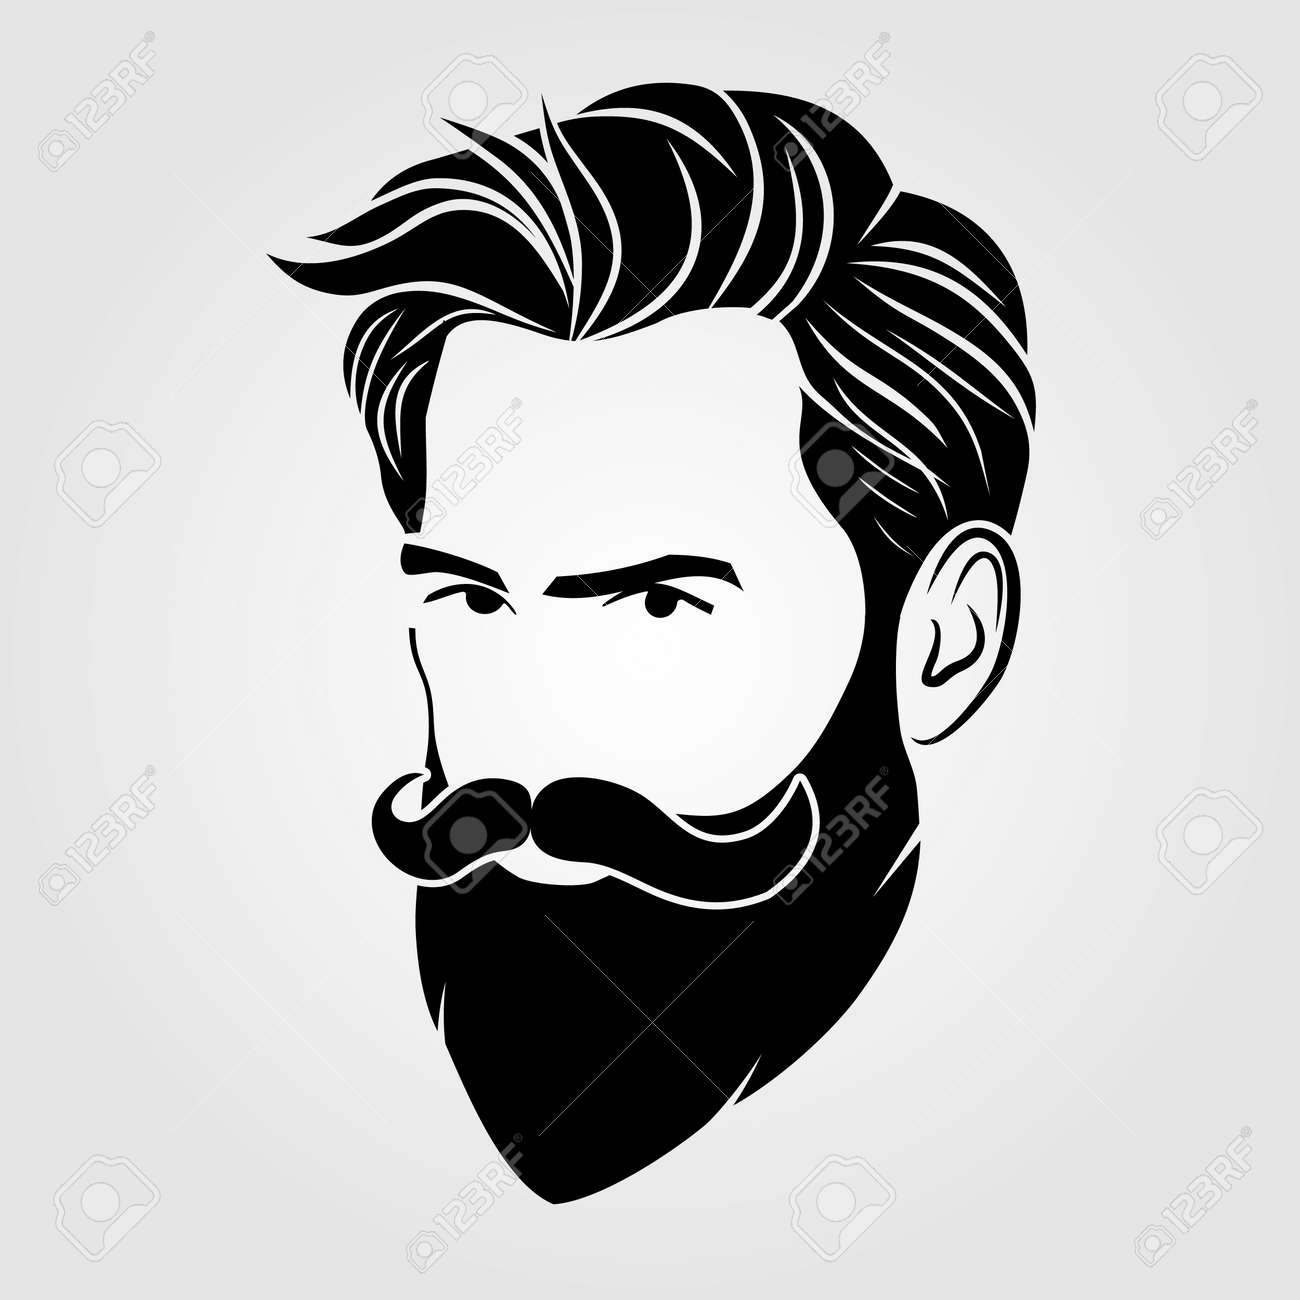 Bearded men, hipster face icon isolated. Vector - 169447759